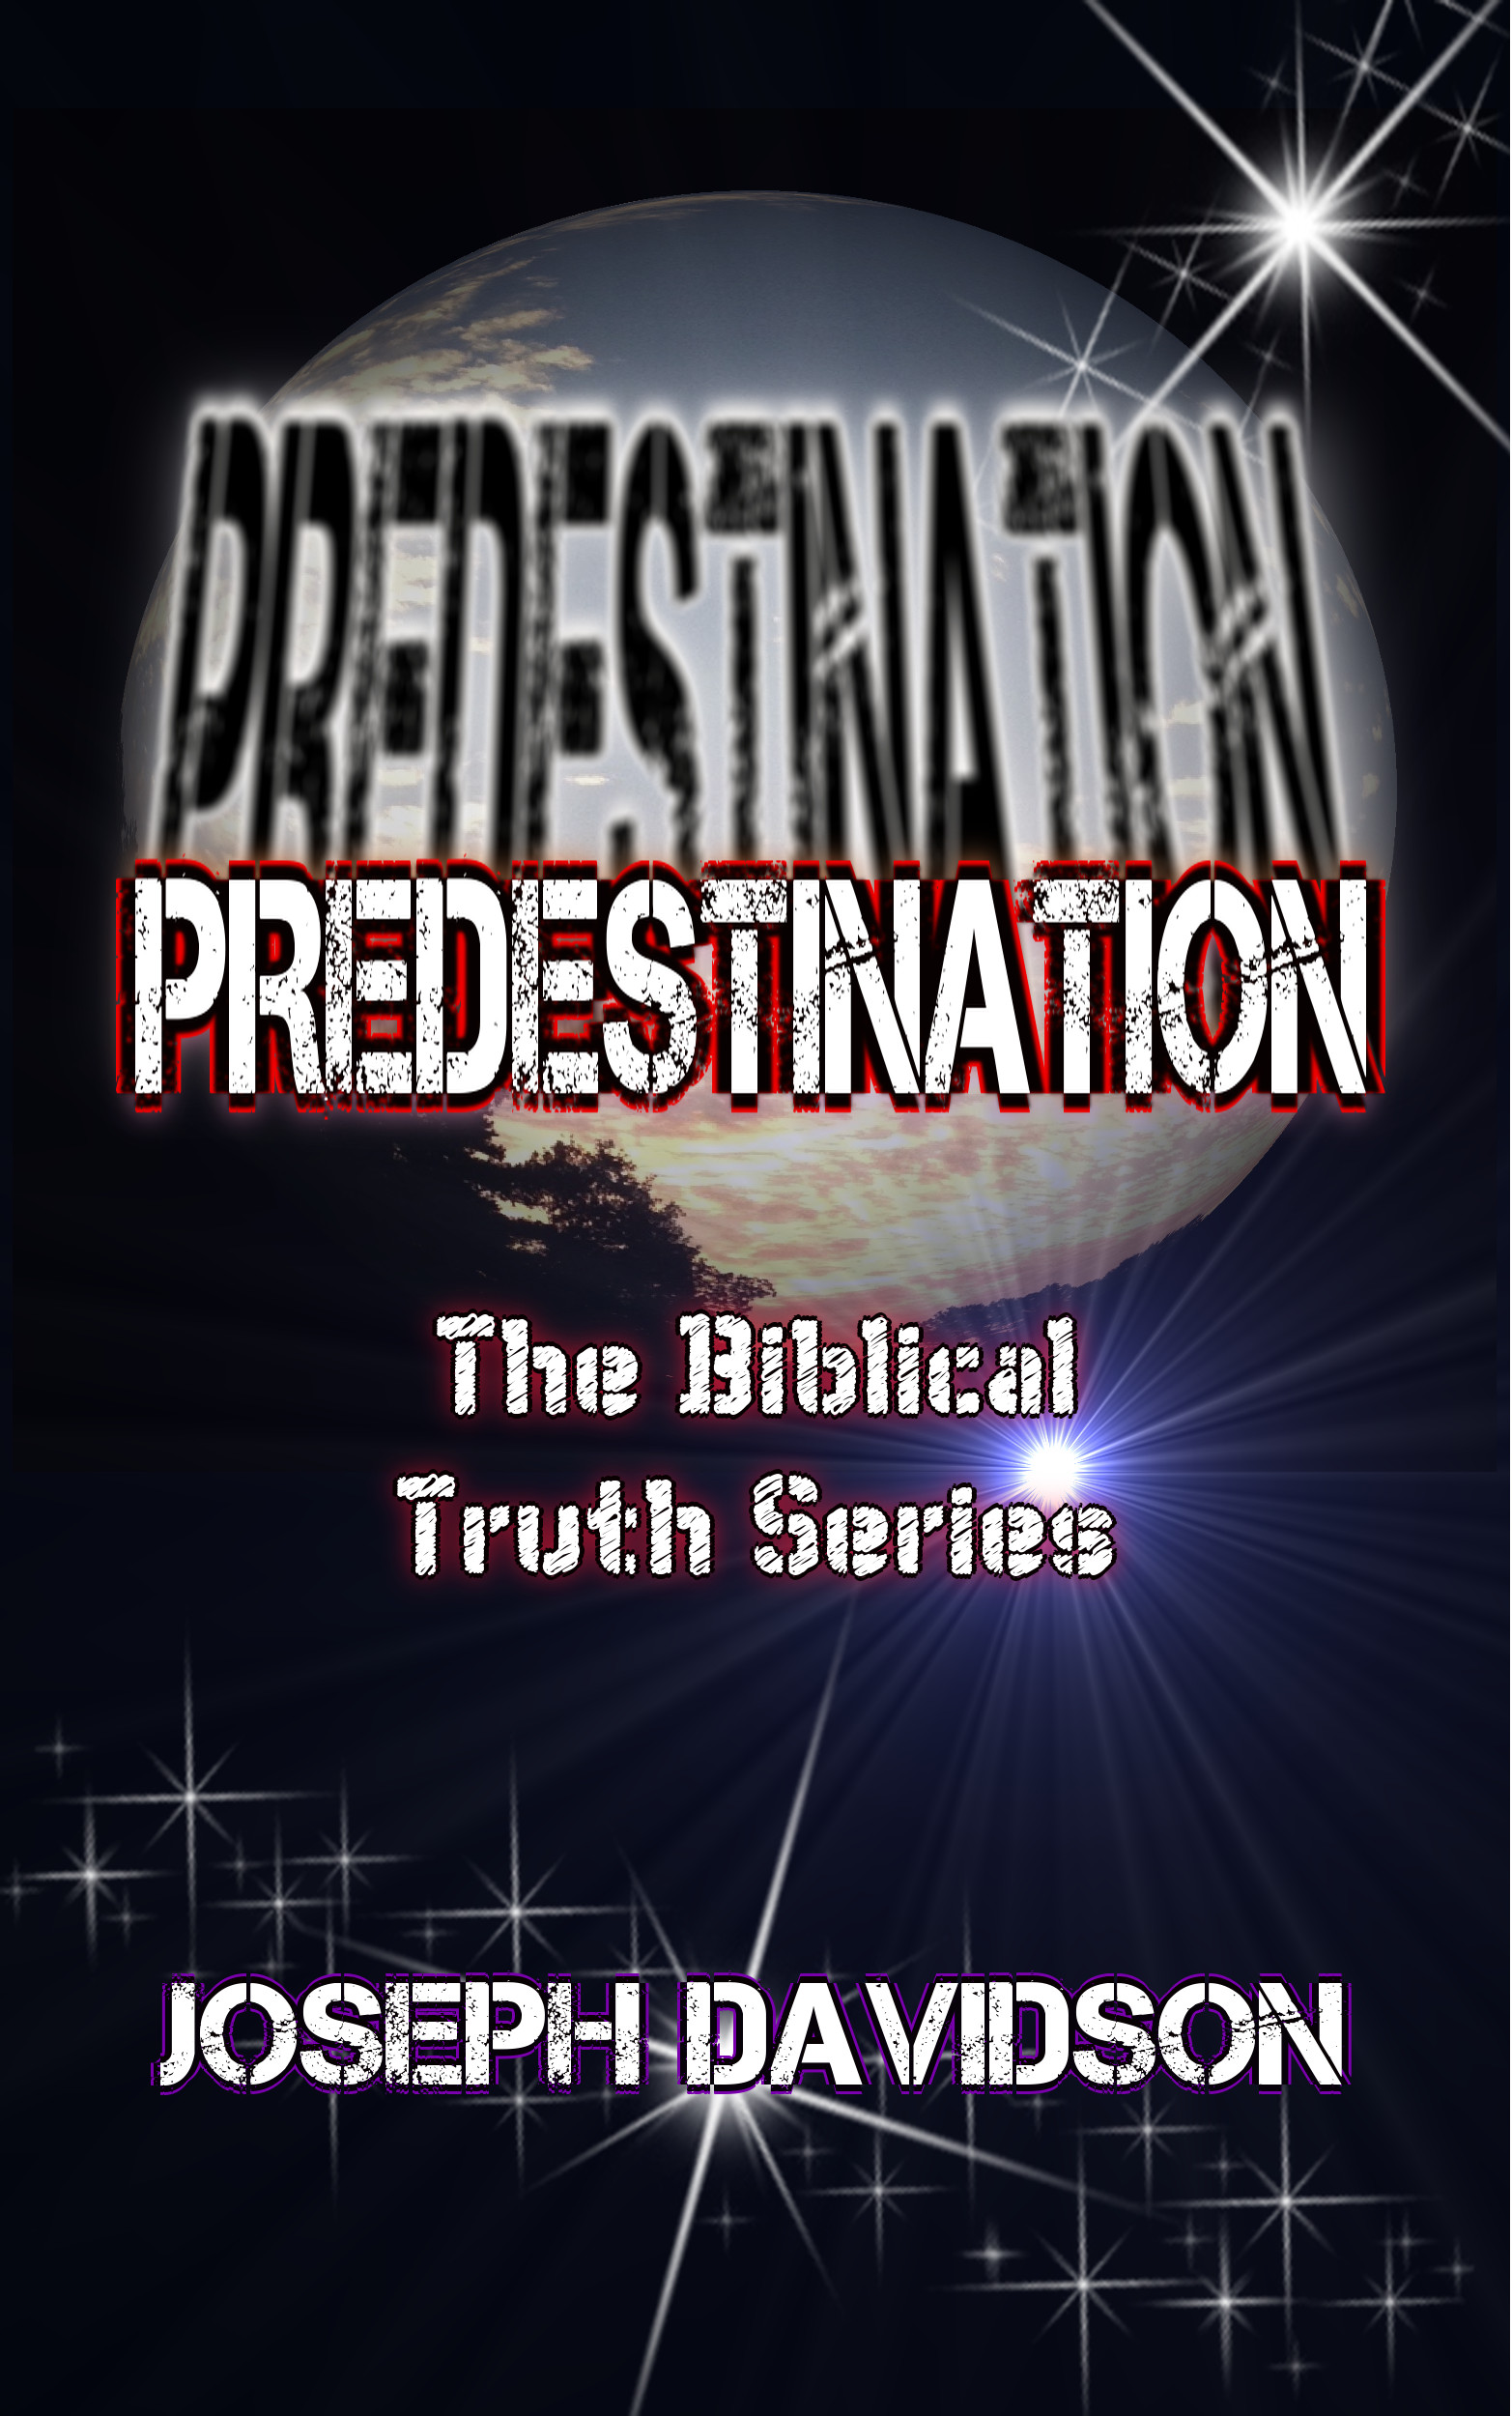 different facts and opinions about predestination in the bible How should we understand biblical passages about predestination in the bible people are very often there may be different teachings about predestination.